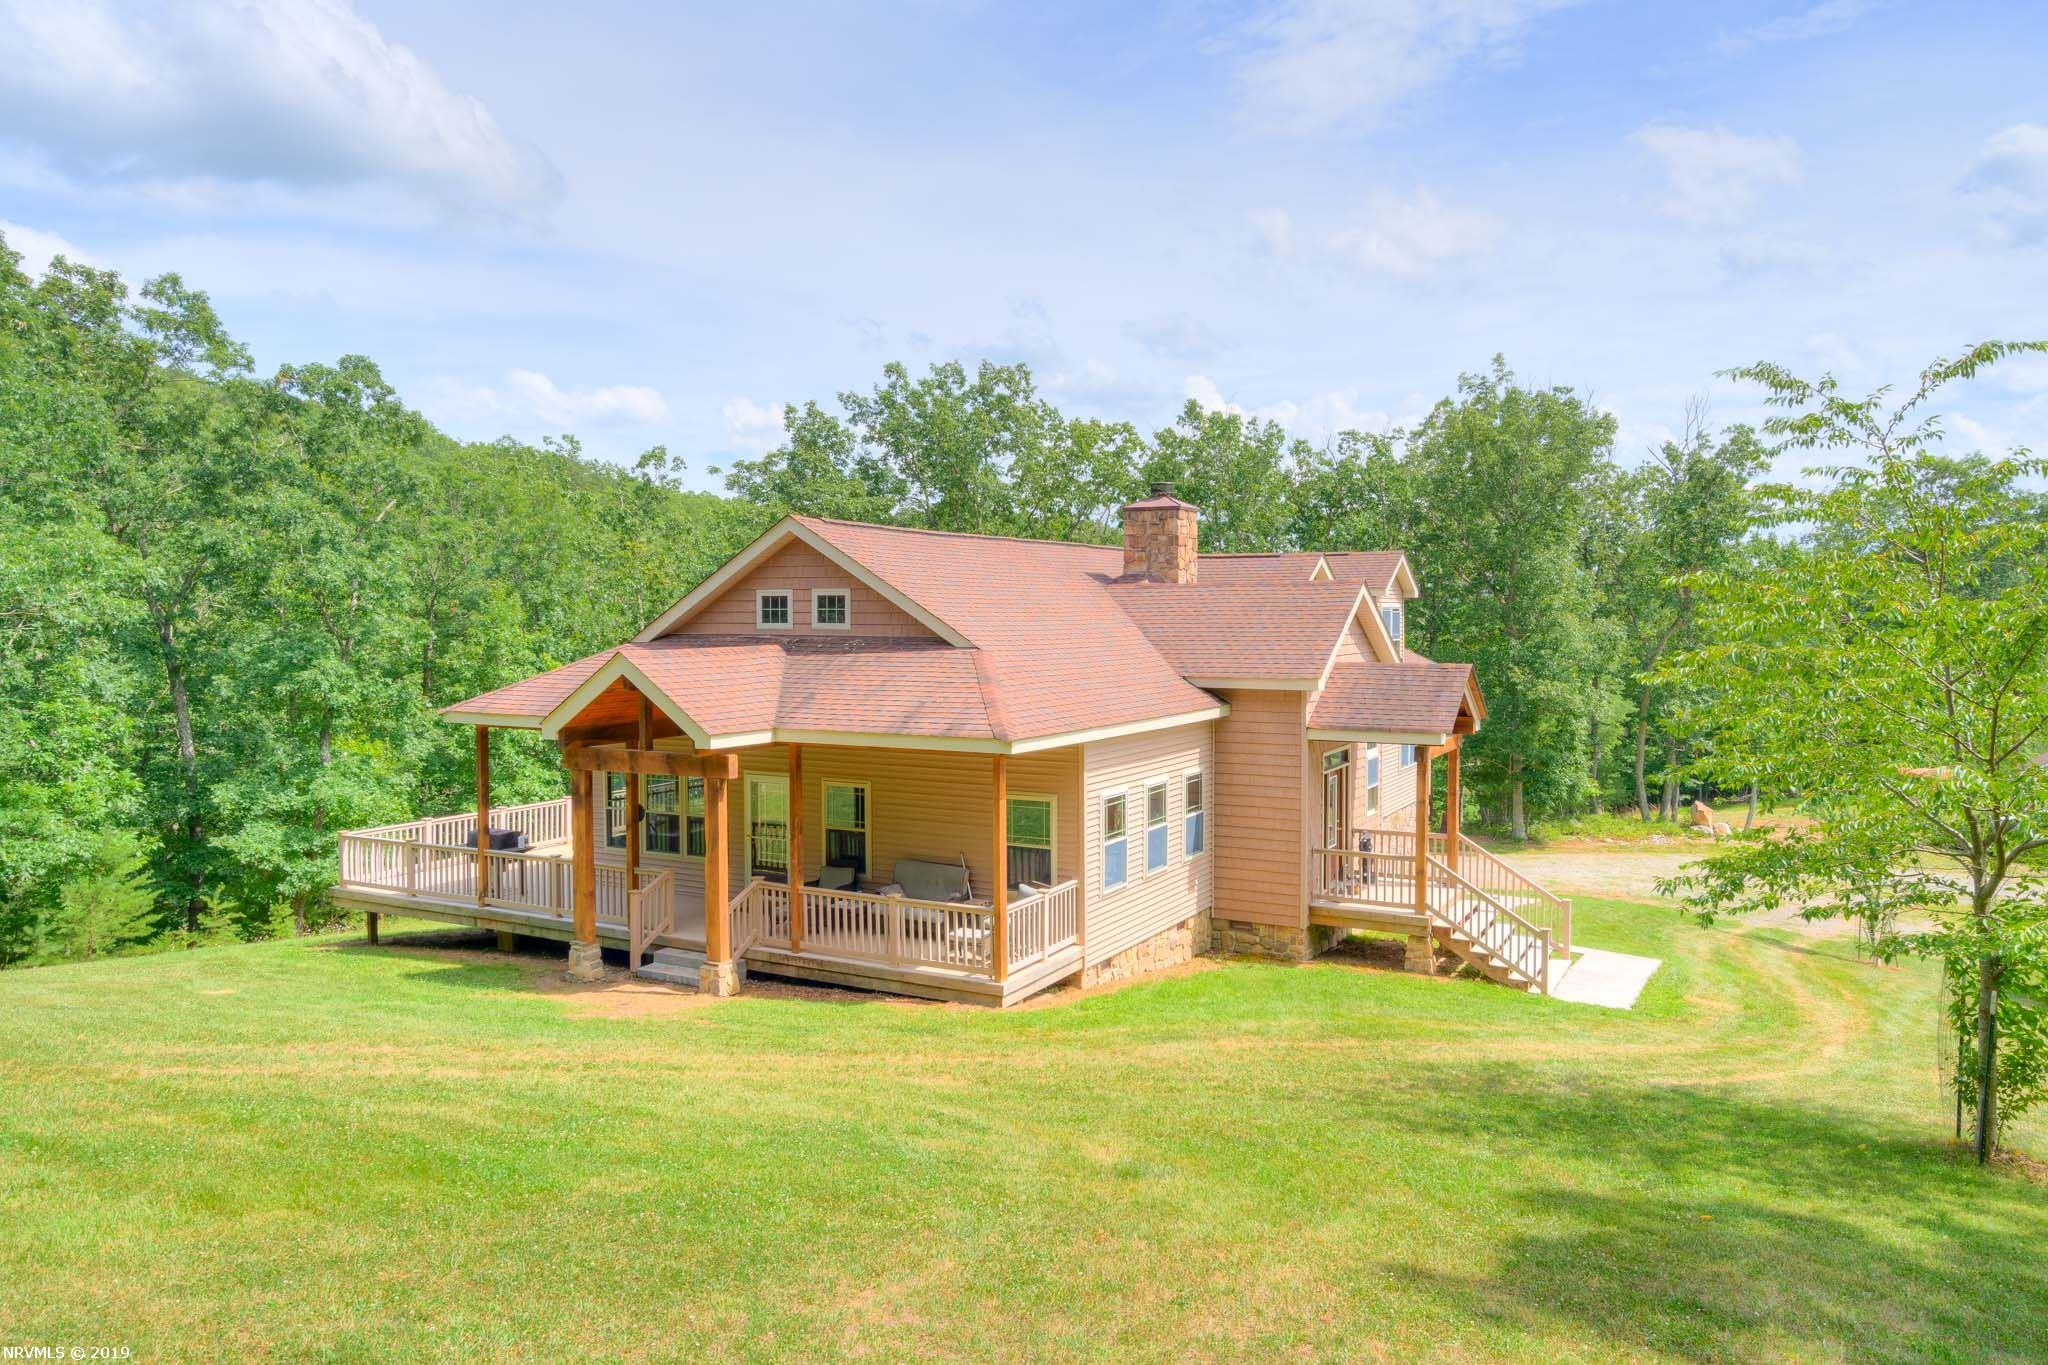 With almost 600 acres, this custom built 3BR, 3.5BA home is located in a very private setting with a pond, cleared yard and beautiful barn, stick-built with Hardy plank, with a massive amount of storage space. Enjoy the open floor plan of this Lodge inspired home, adorned with a stone, wood burning fireplace, huge vaulted ceilings, marble hearth and all three bedrooms on the main level. You will enjoy the luxurious tiled shower in the master bath. The space upstairs is perfect for entertaining including a game room and a gorgeous room perfect for playing cards, a sun room or perfect space for an office with outside access to the deck below.  There is abundant wildlife and fishing that is perfect for the outdoor enthusiast!  Many trails throughout the property with food plots set up for deer and turkey management!  Must see!